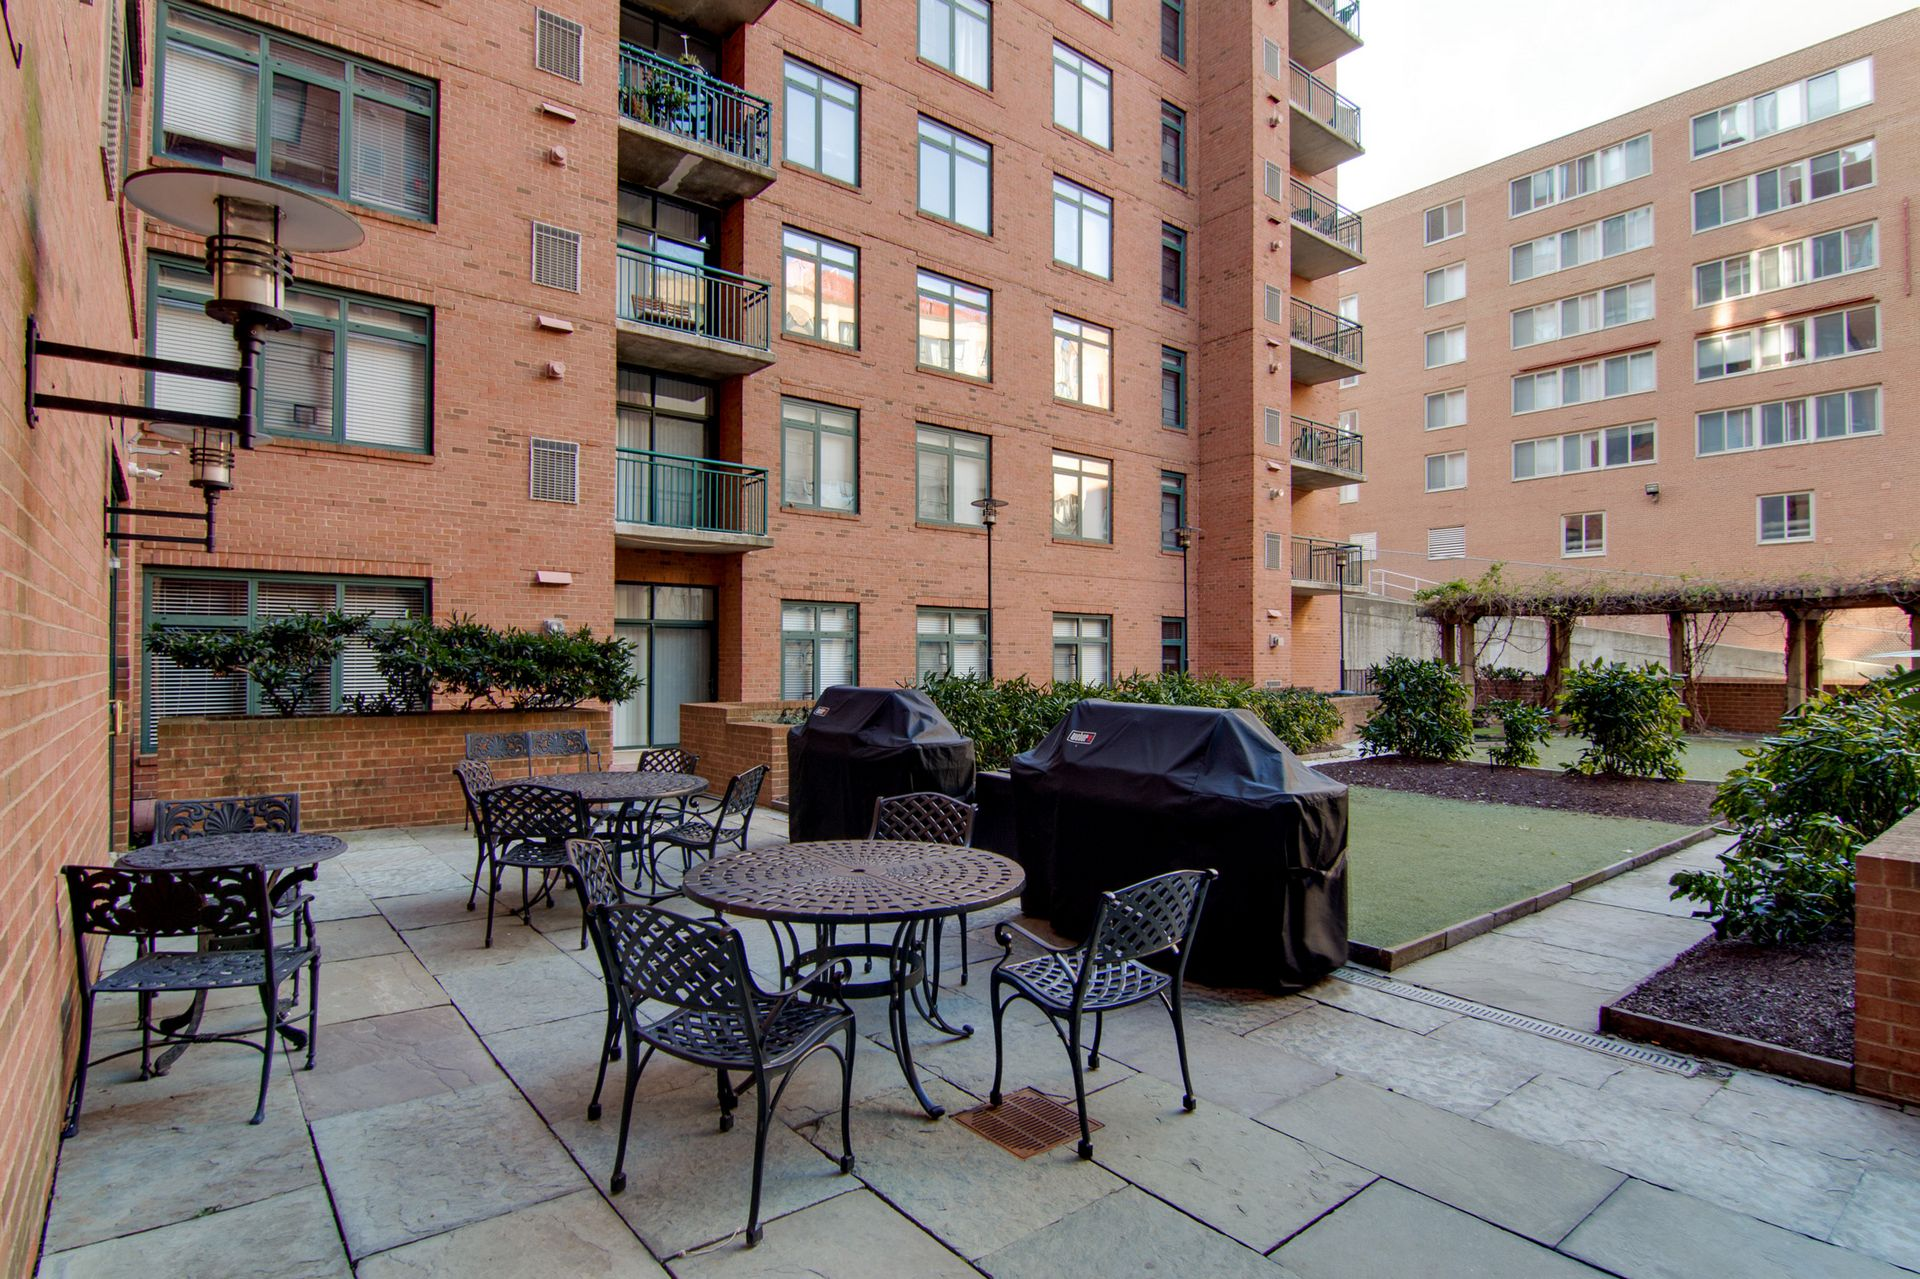 outdoor tables and chairs in grilling area